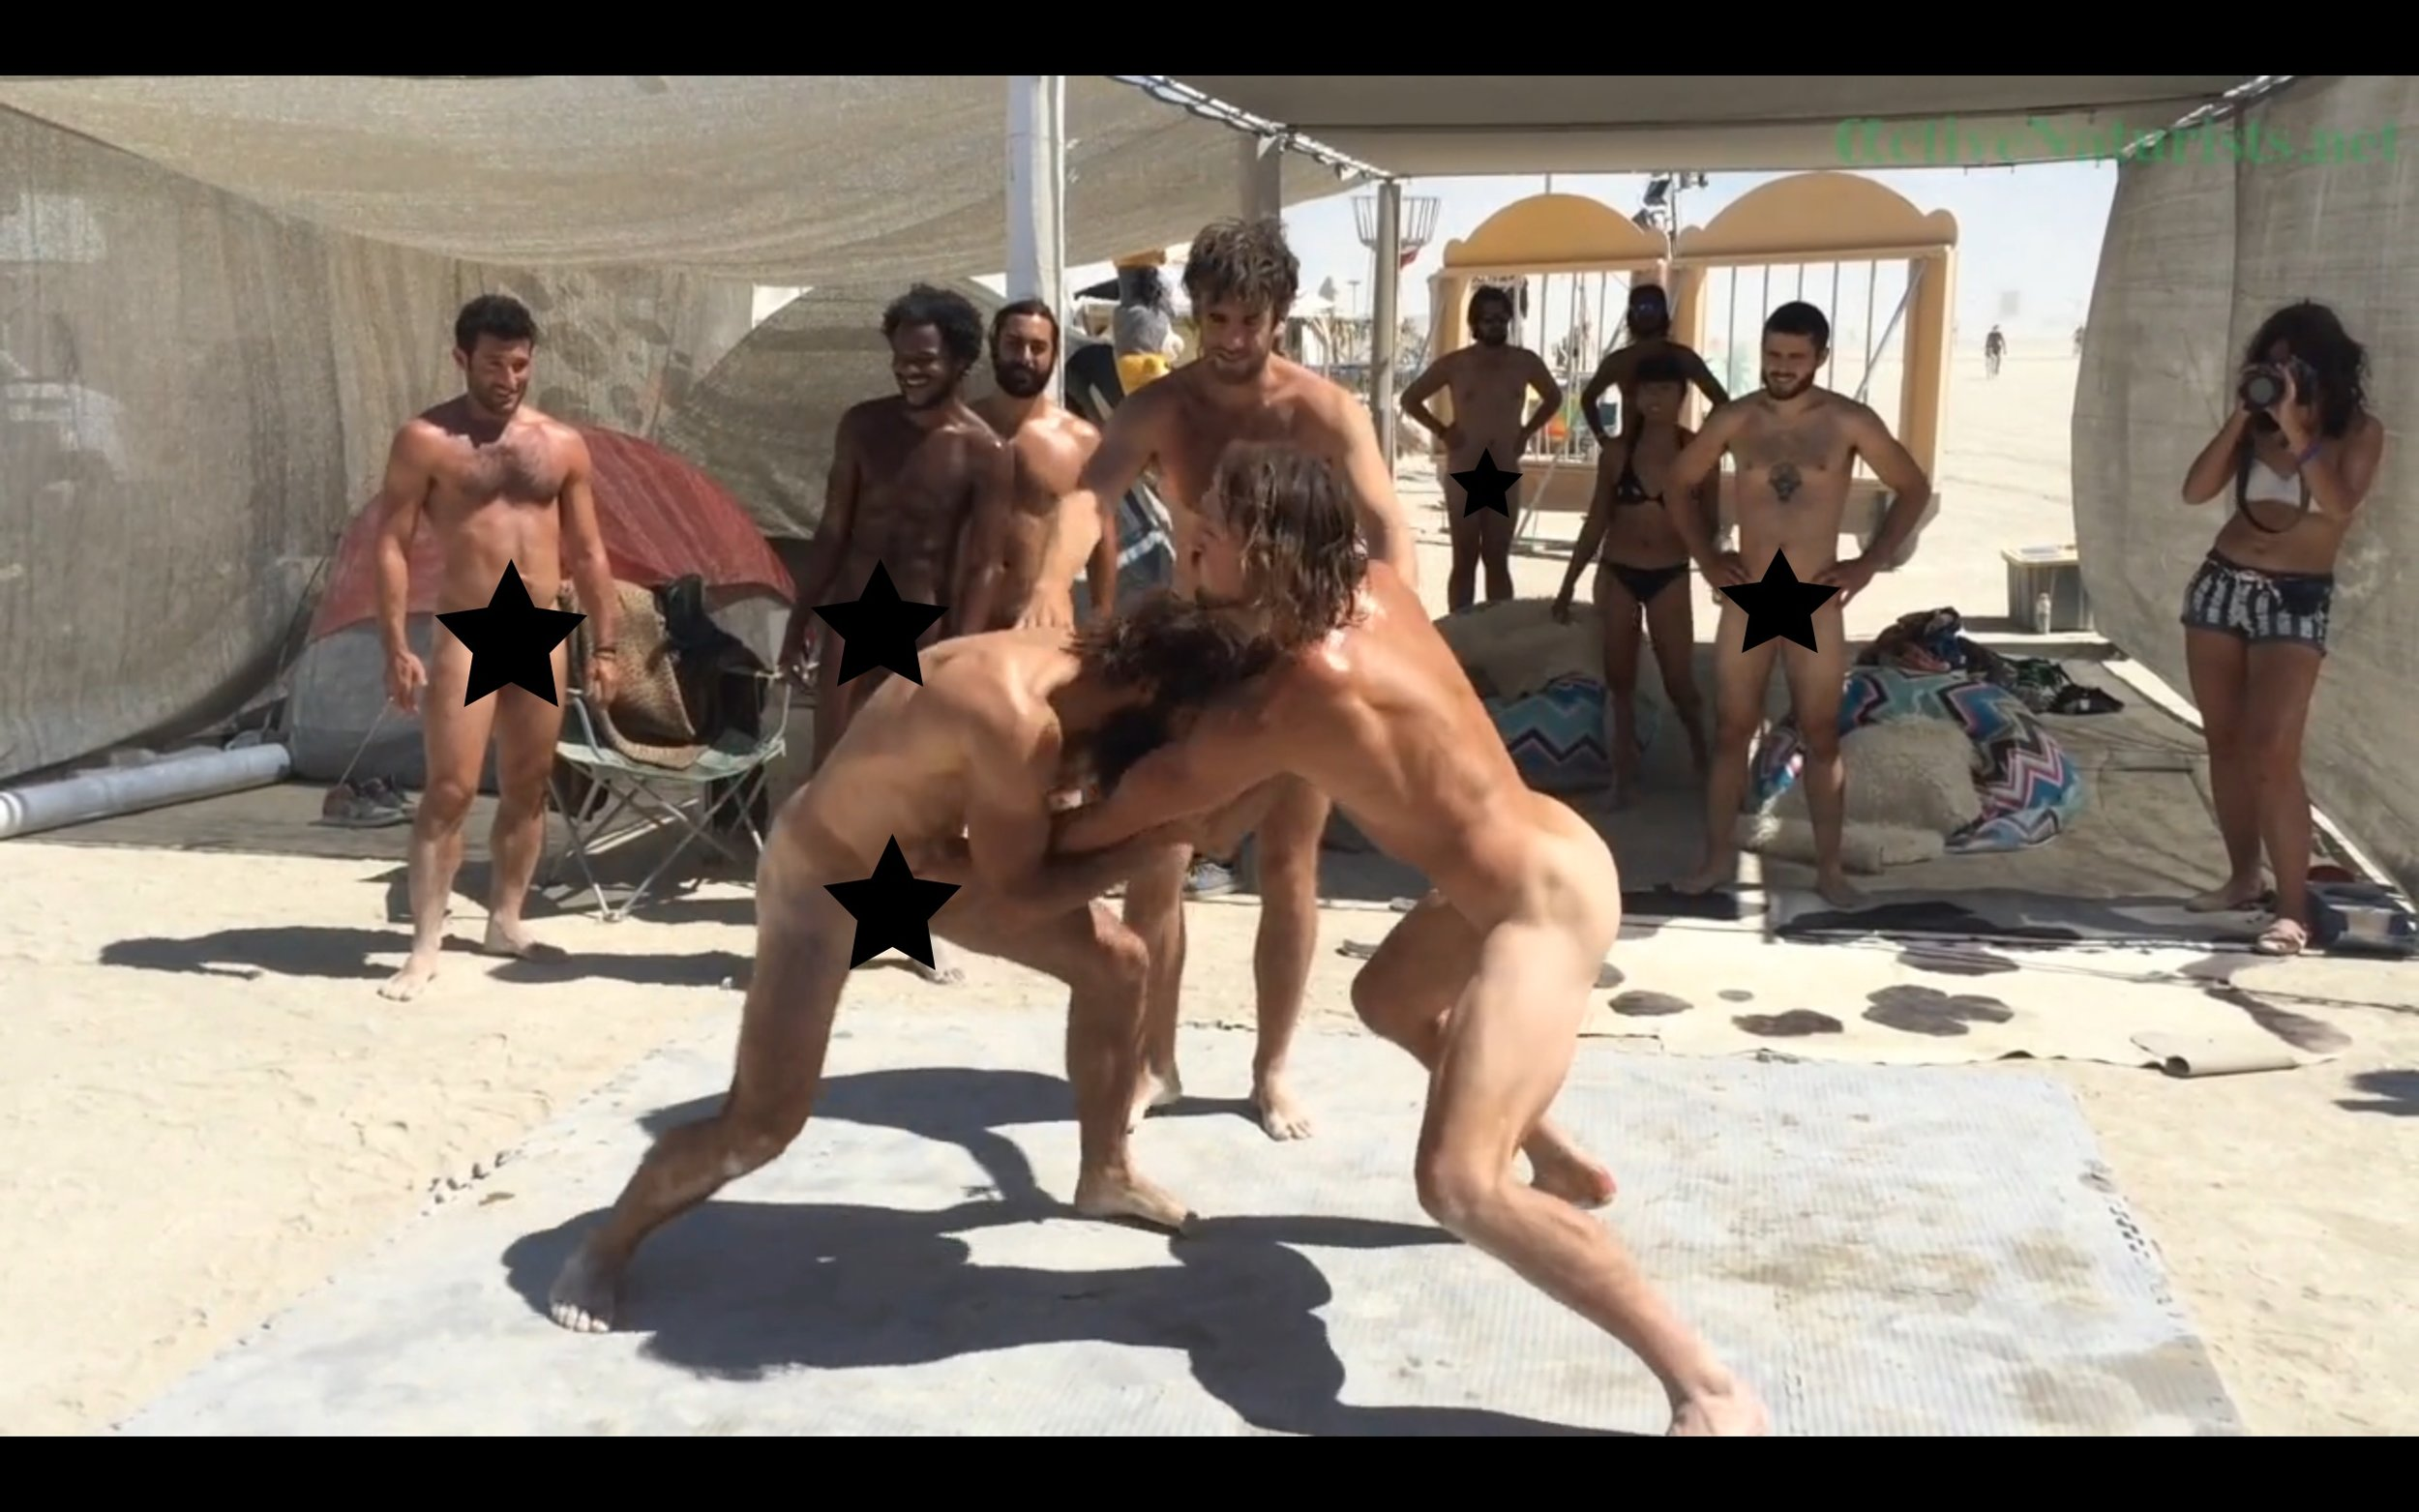 This Video Of Male Nude Wrestling At Burning Man Is Reason Enough